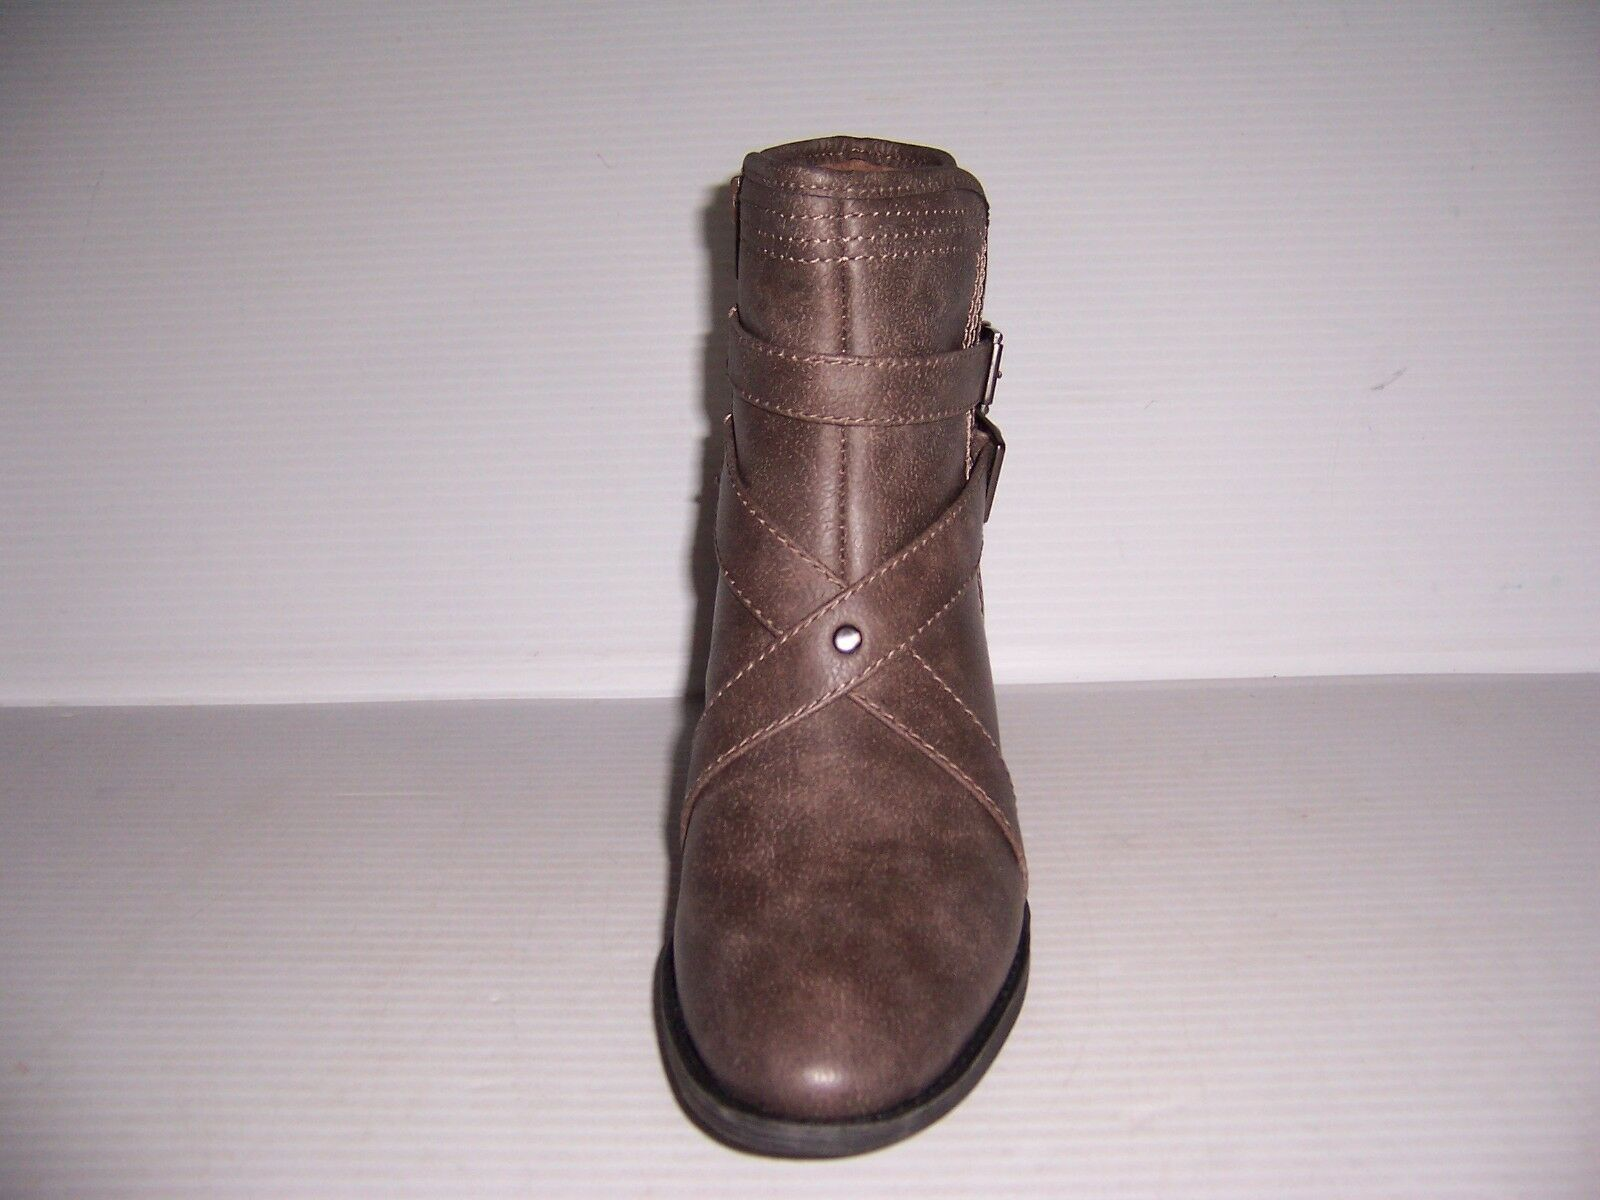 NaturalSoul by naturalizer Zela Women's Grey Booties Booties Booties Ankle Boots Size 7 NEW 60e0f5